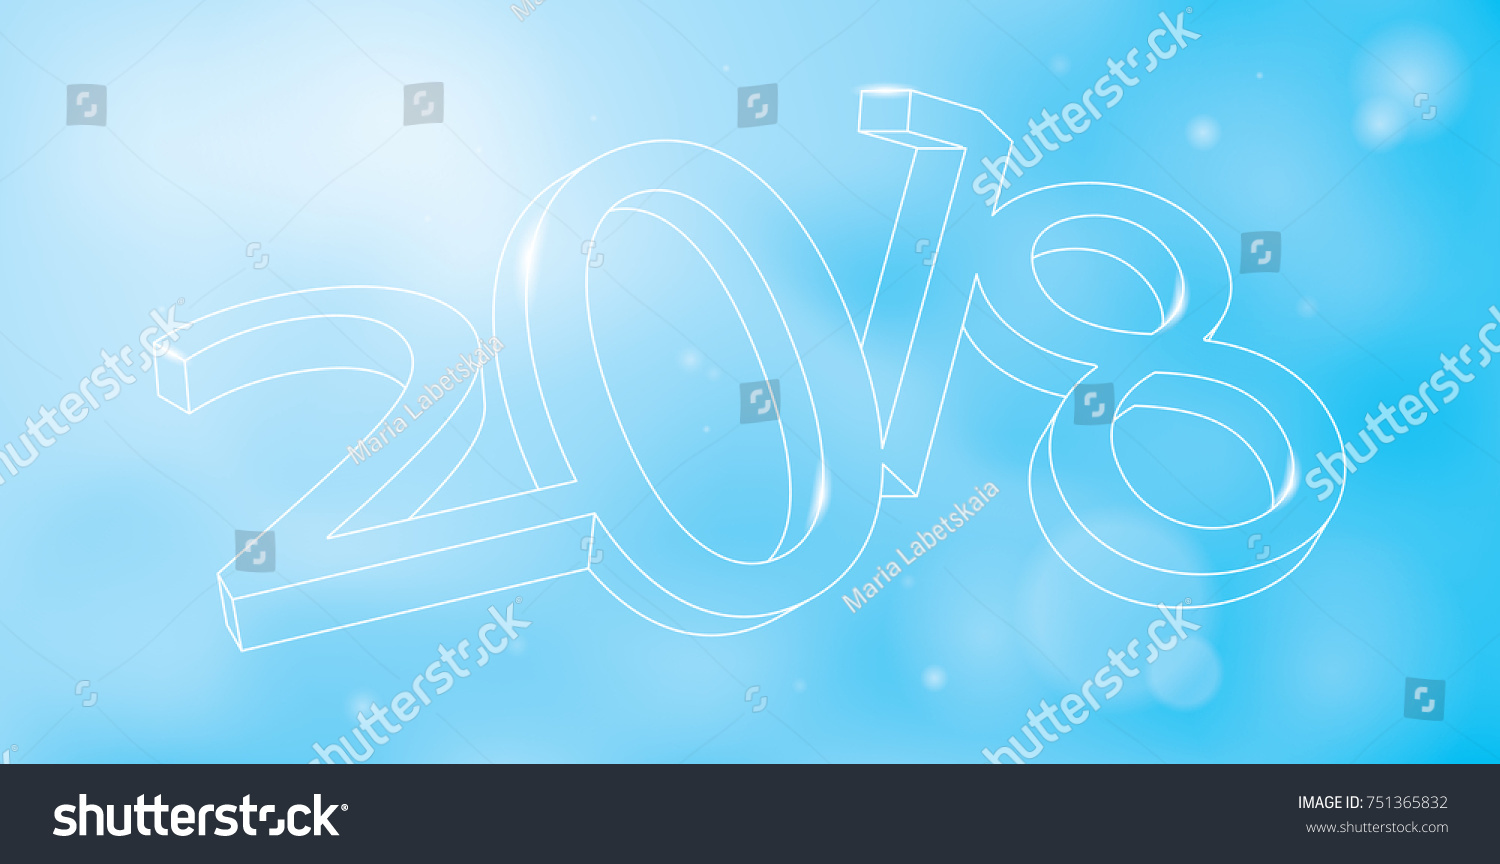 vector 2018 new year banner background illustration 3d wireframe sign on blured background with flares